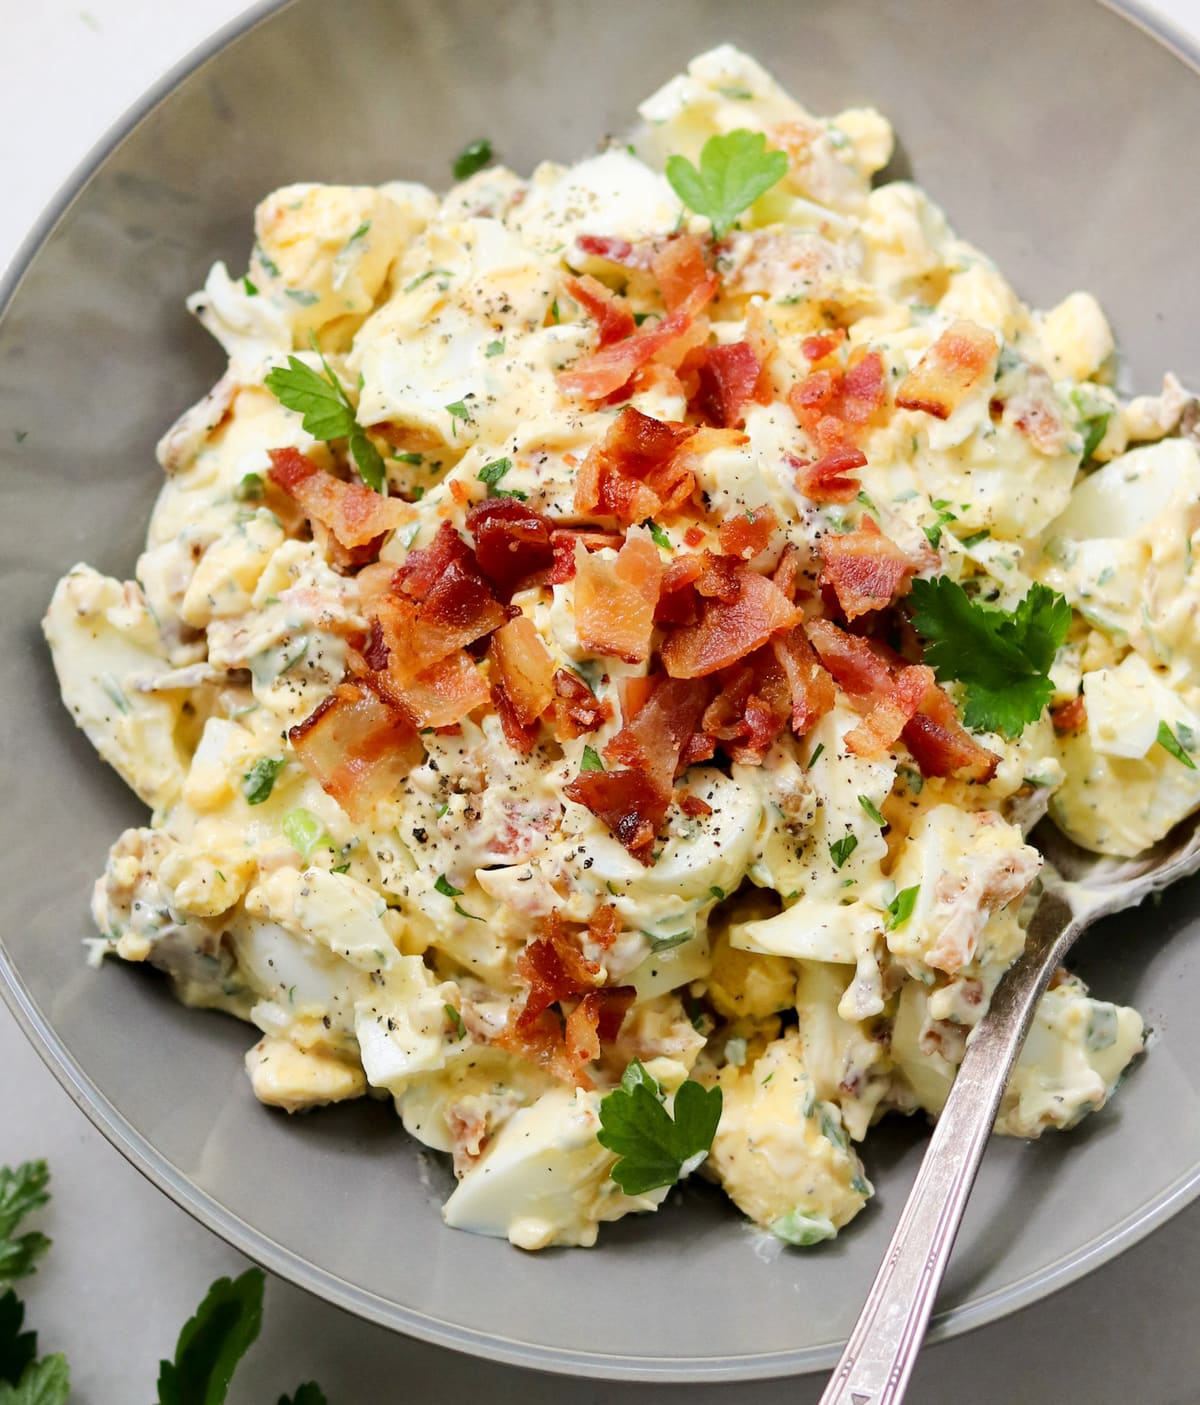 Close up of the finished egg salad in a gray bowl, sprinkled with crumbled bacon and fresh herbs.